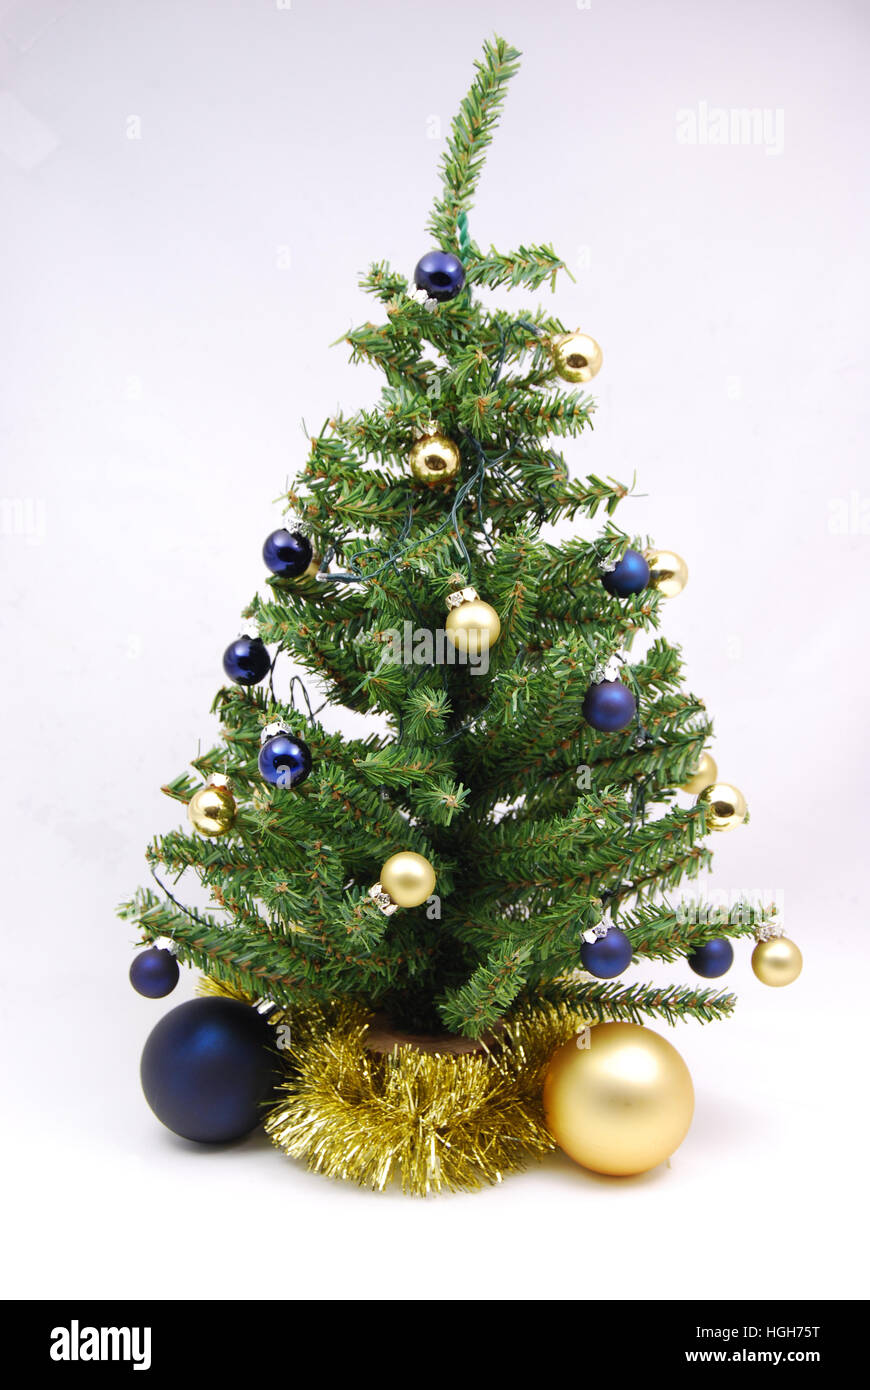 Tiny Garland Stock Photos & Tiny Garland Stock Images - Alamy